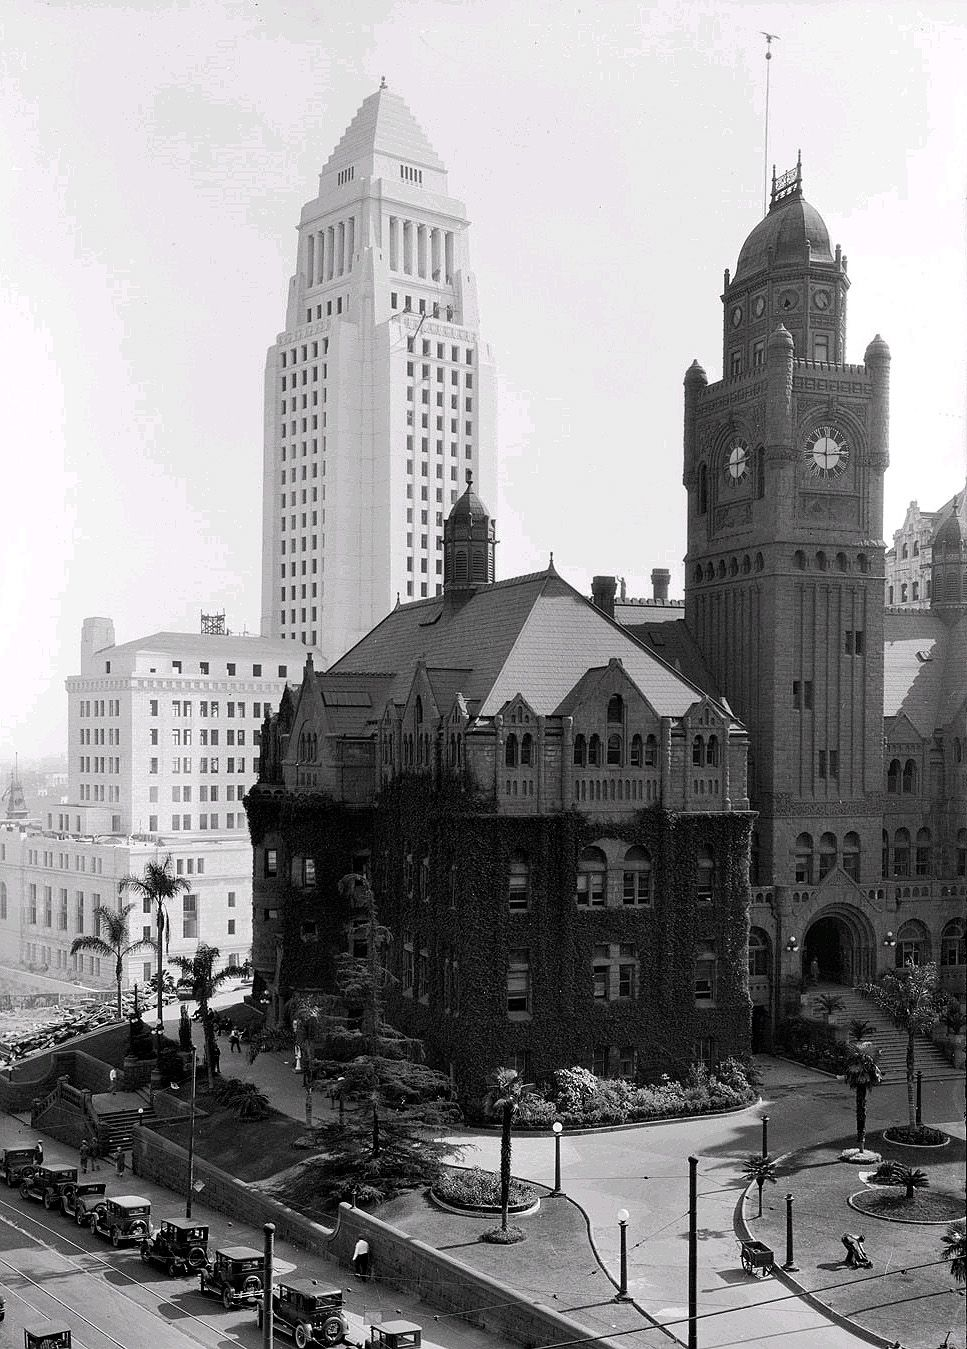 The Old La Courthouse With The Clock Faces Only 1 Of The Four Wherabouts Known Los Angeles History Los Angeles City Vintage Los Angeles